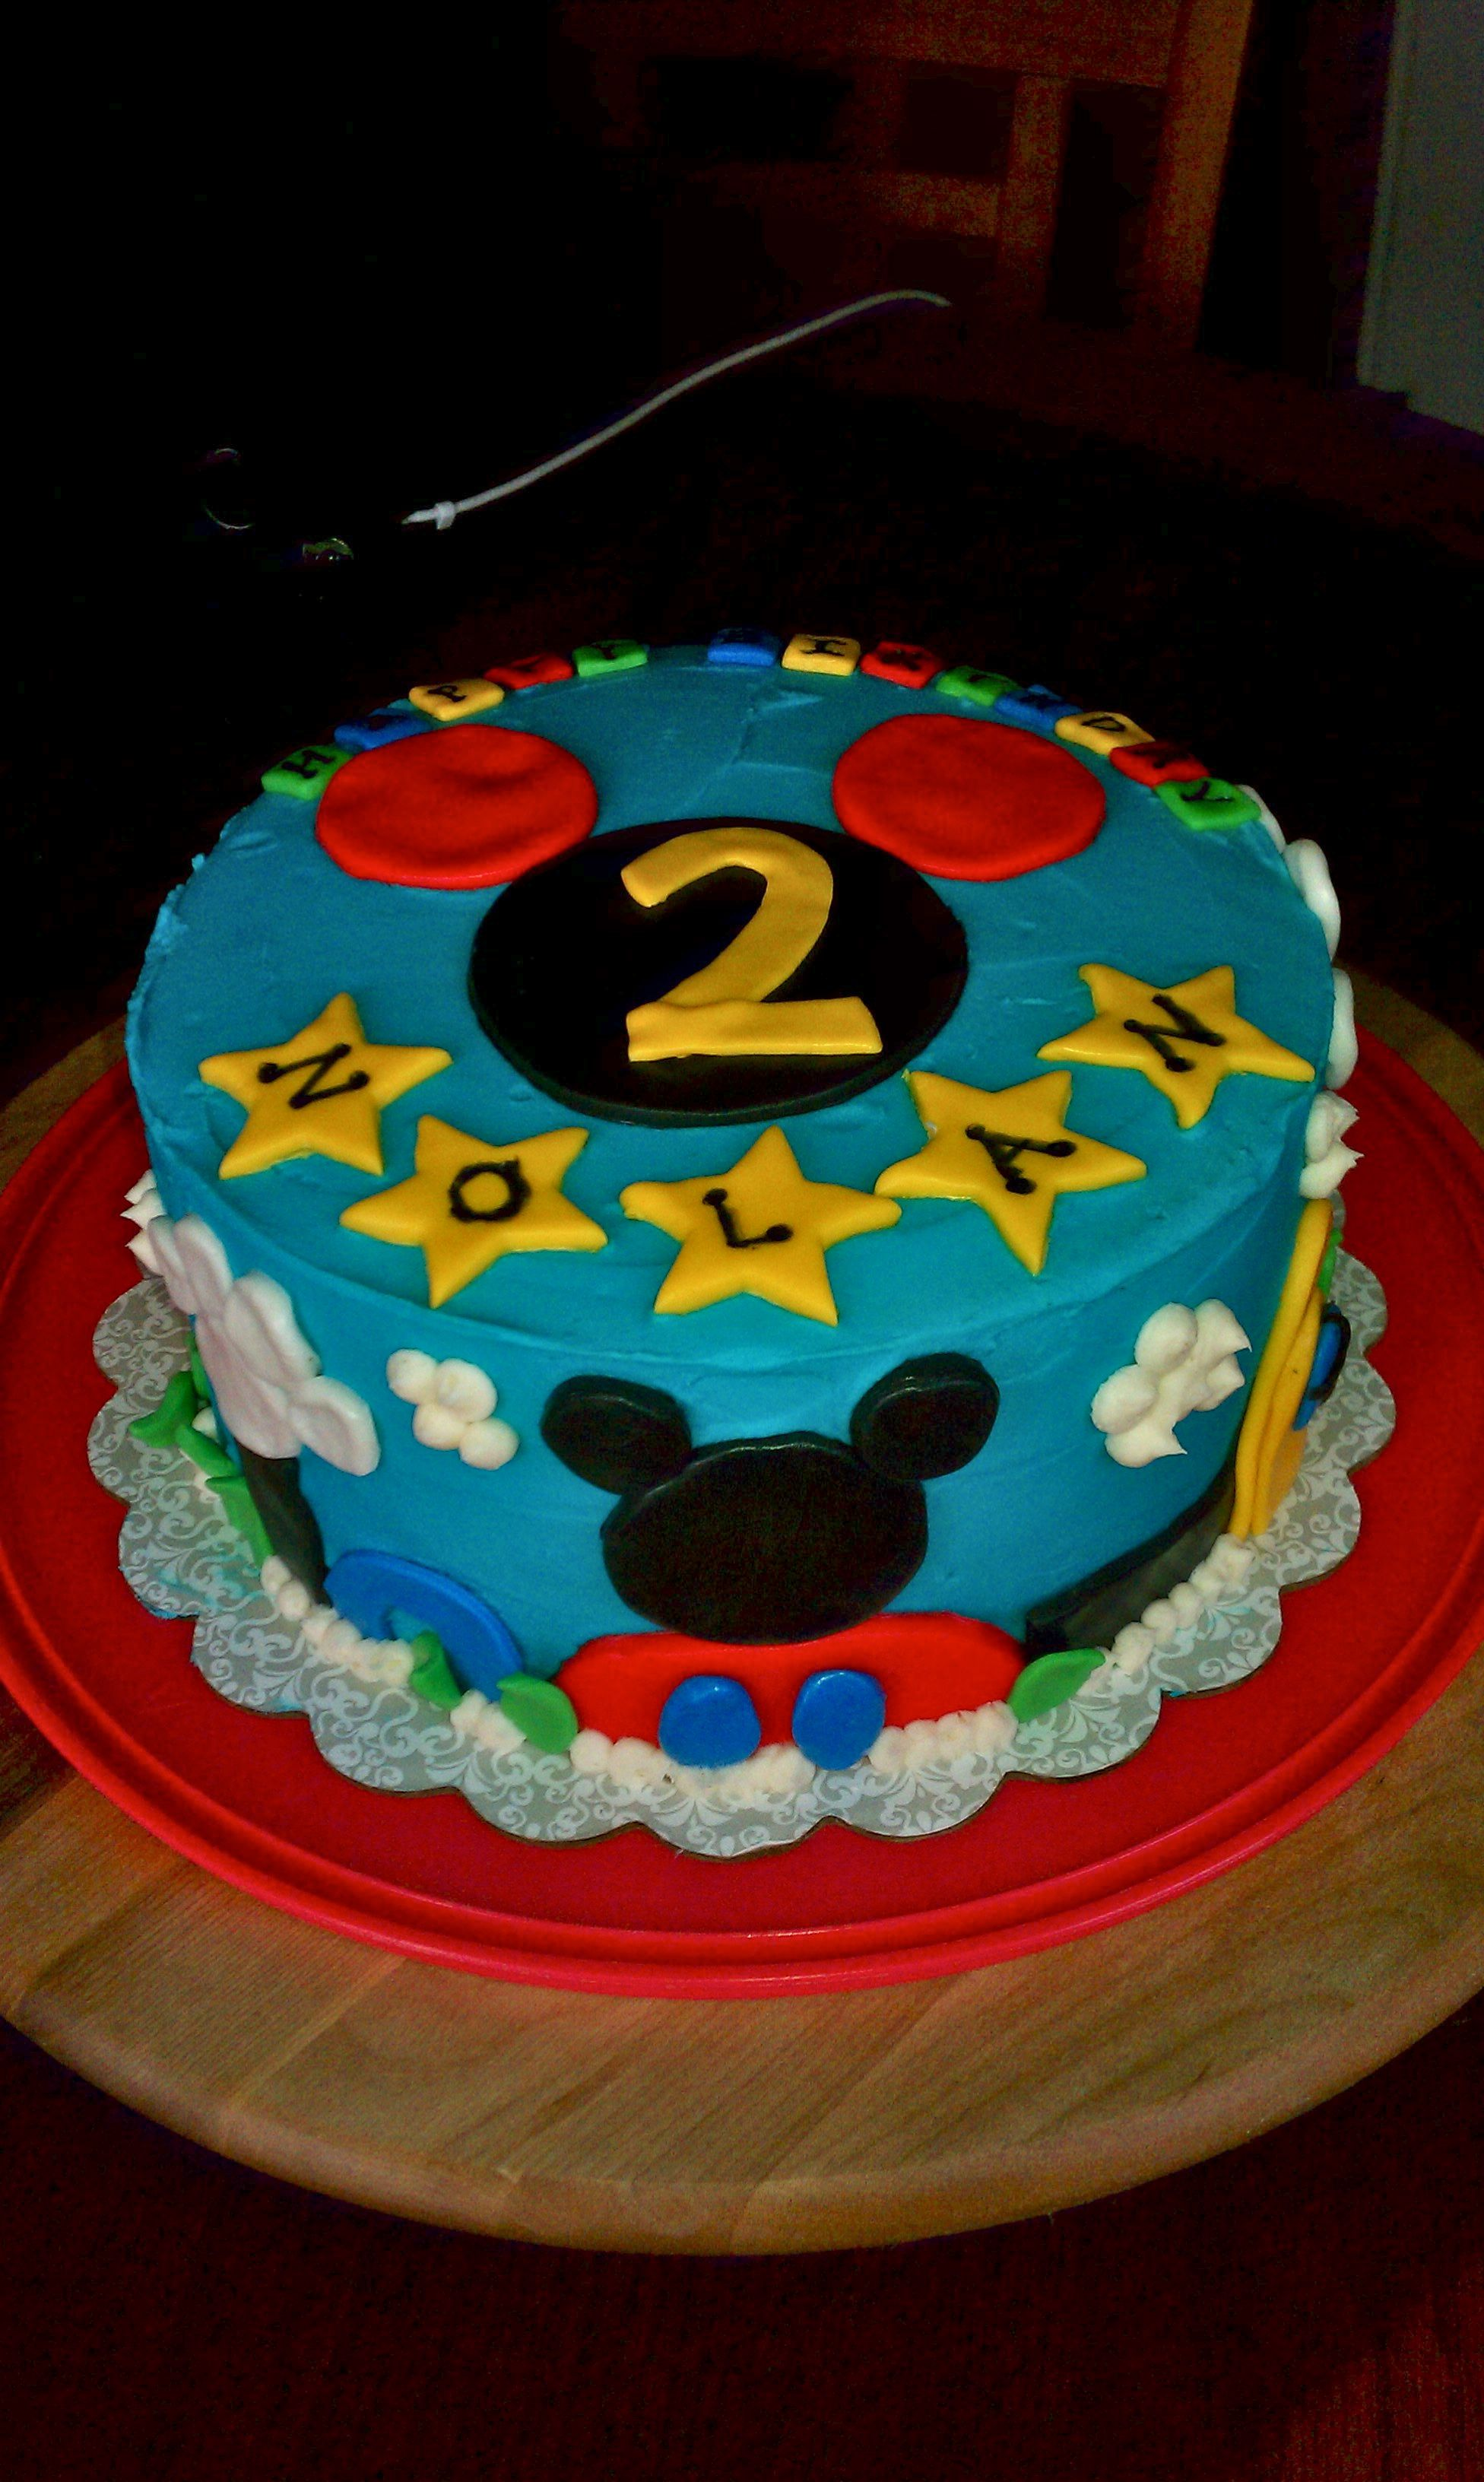 Images Of Mickey Mouse Birthday Cake : Mickey Mouse Birthday Cake 2nd birthday Pinterest